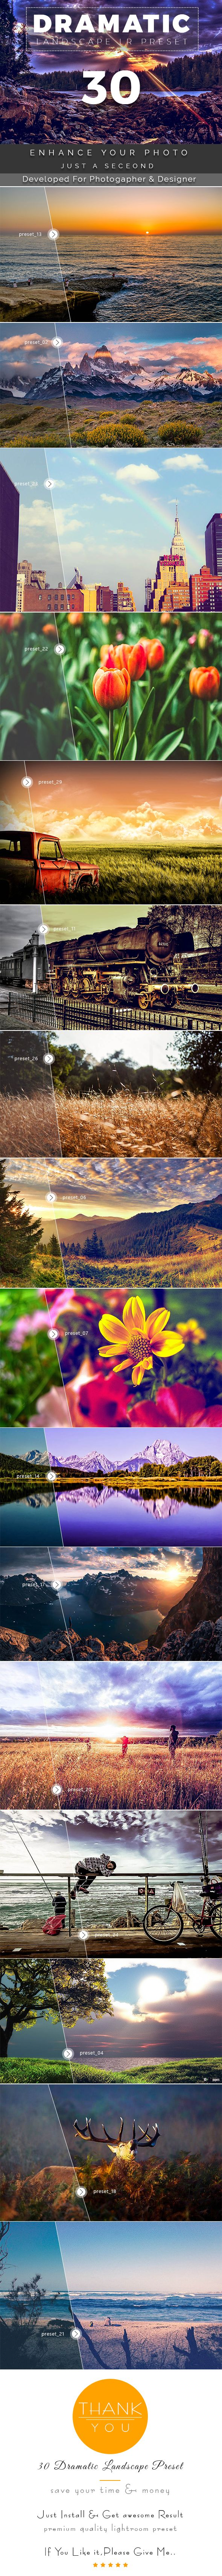 30 Dramatic Landscape Preset by FabioDesign_Lab 30 Dramatic Landscape Preset This pack is very creative lightroom pack. Every preset work properly. No destroy preset included in